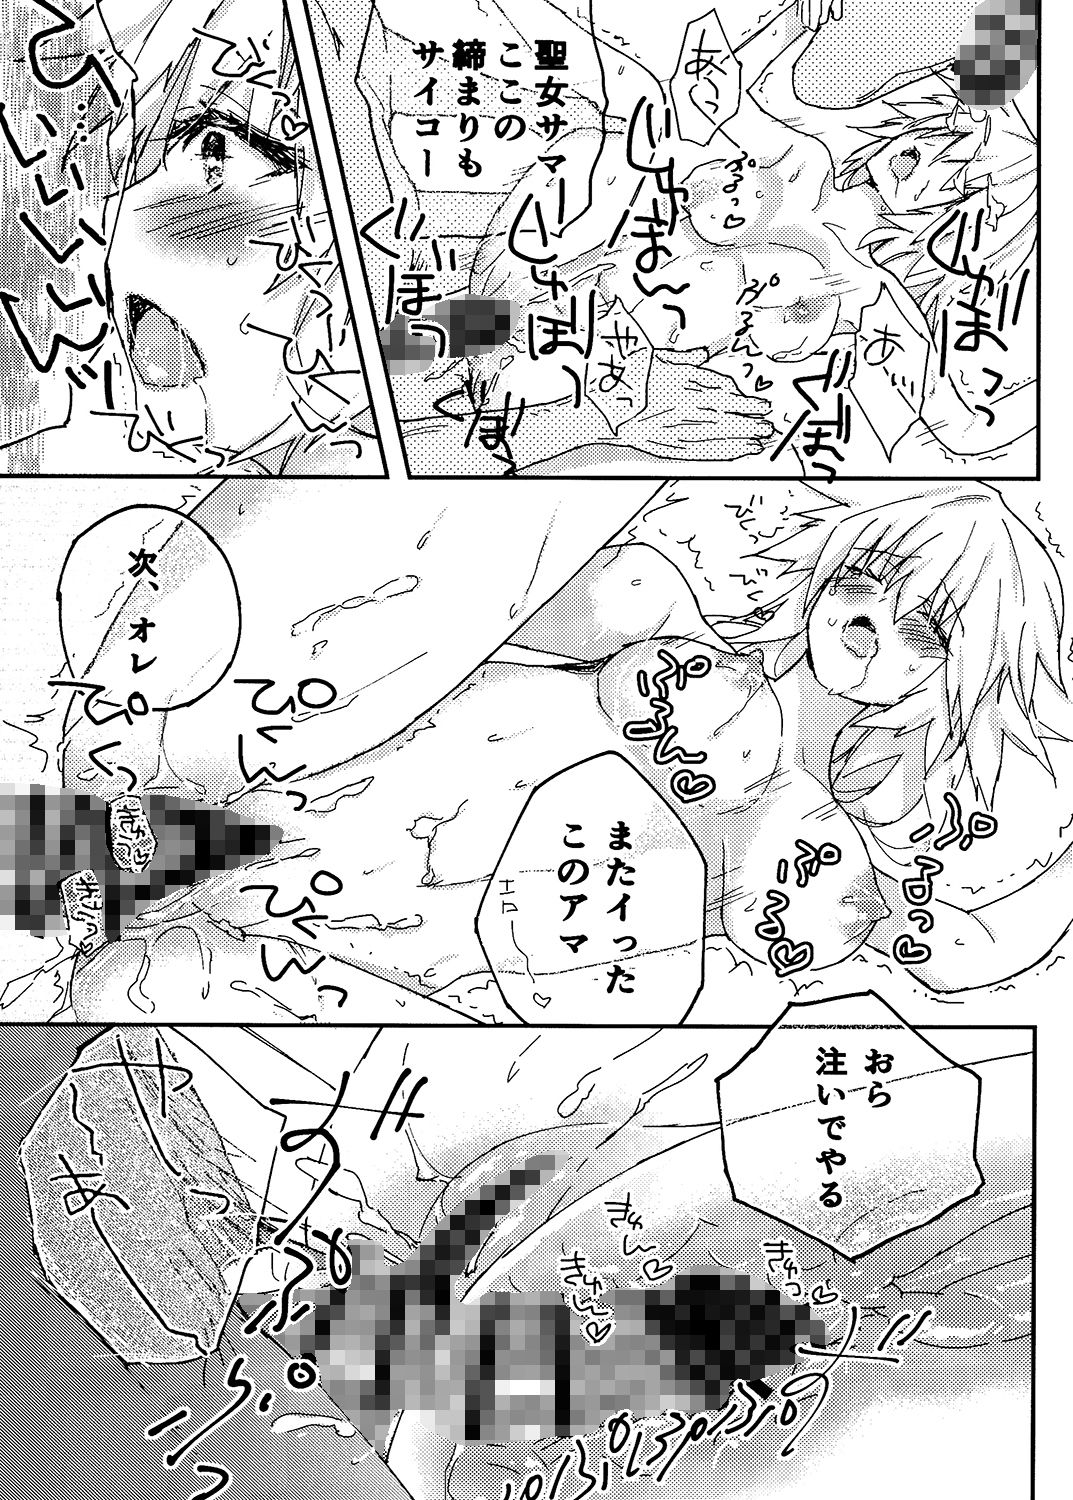 [同人]「Riding Noah SP」(DAISY)